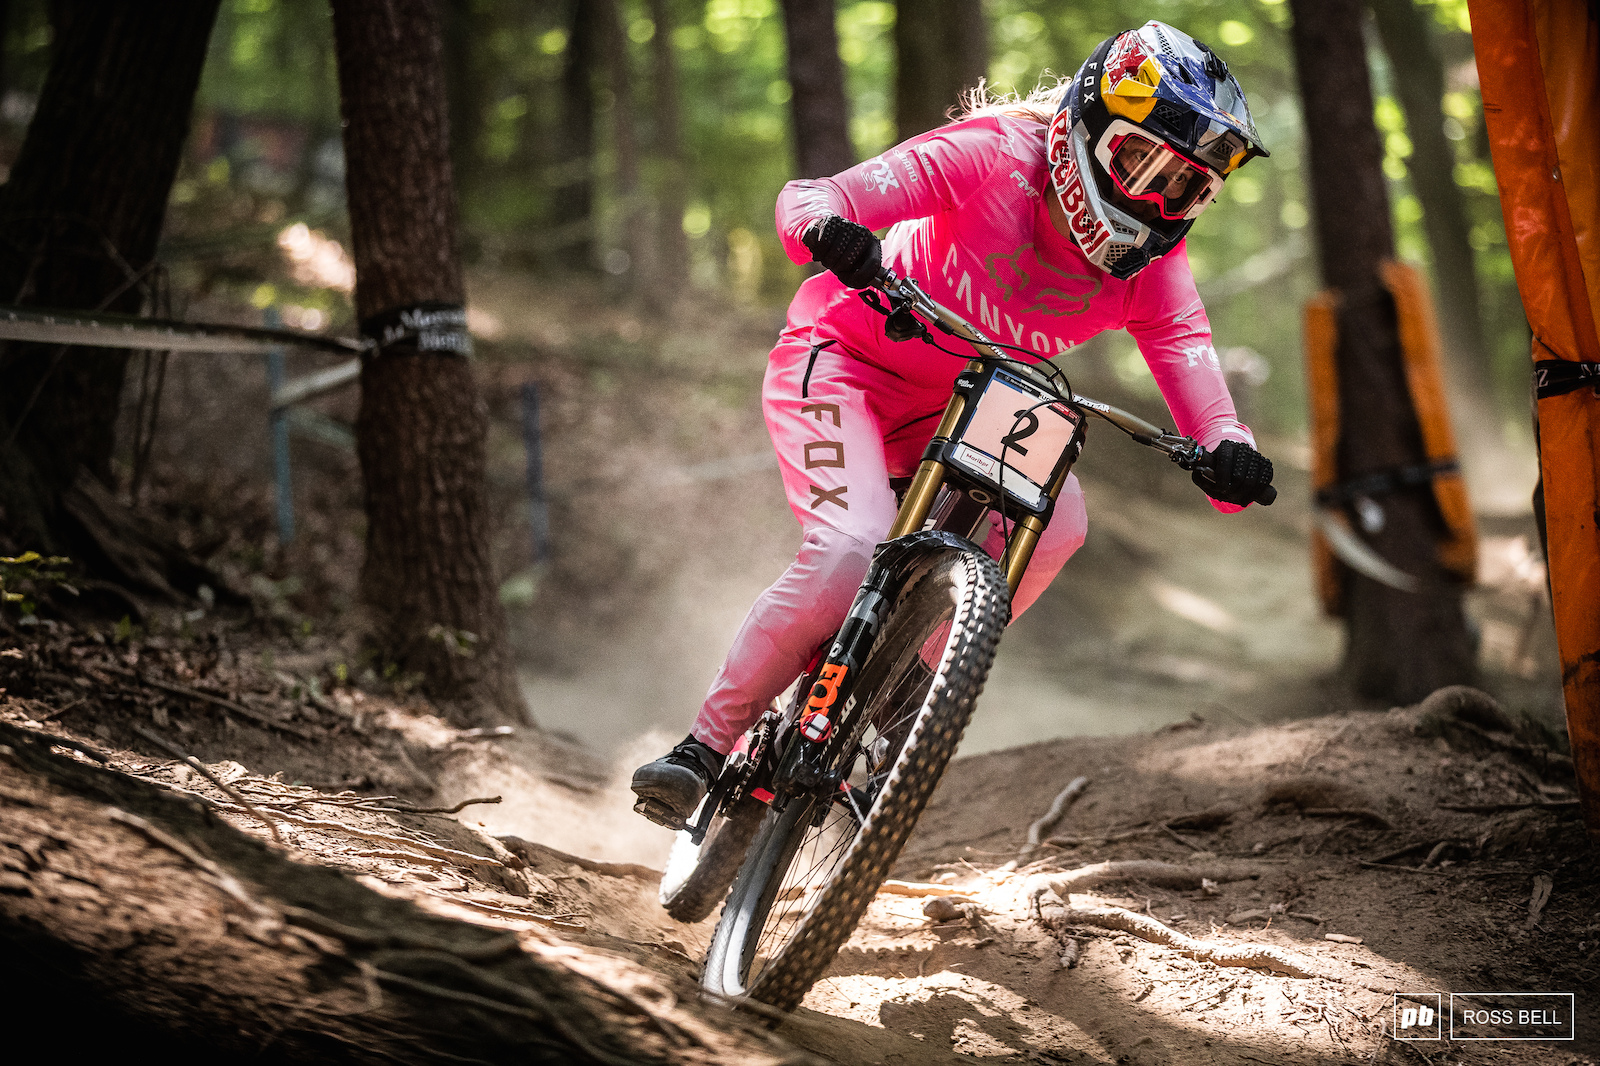 You can expect to see Tahnee Seagrave move up the order tomorrow.